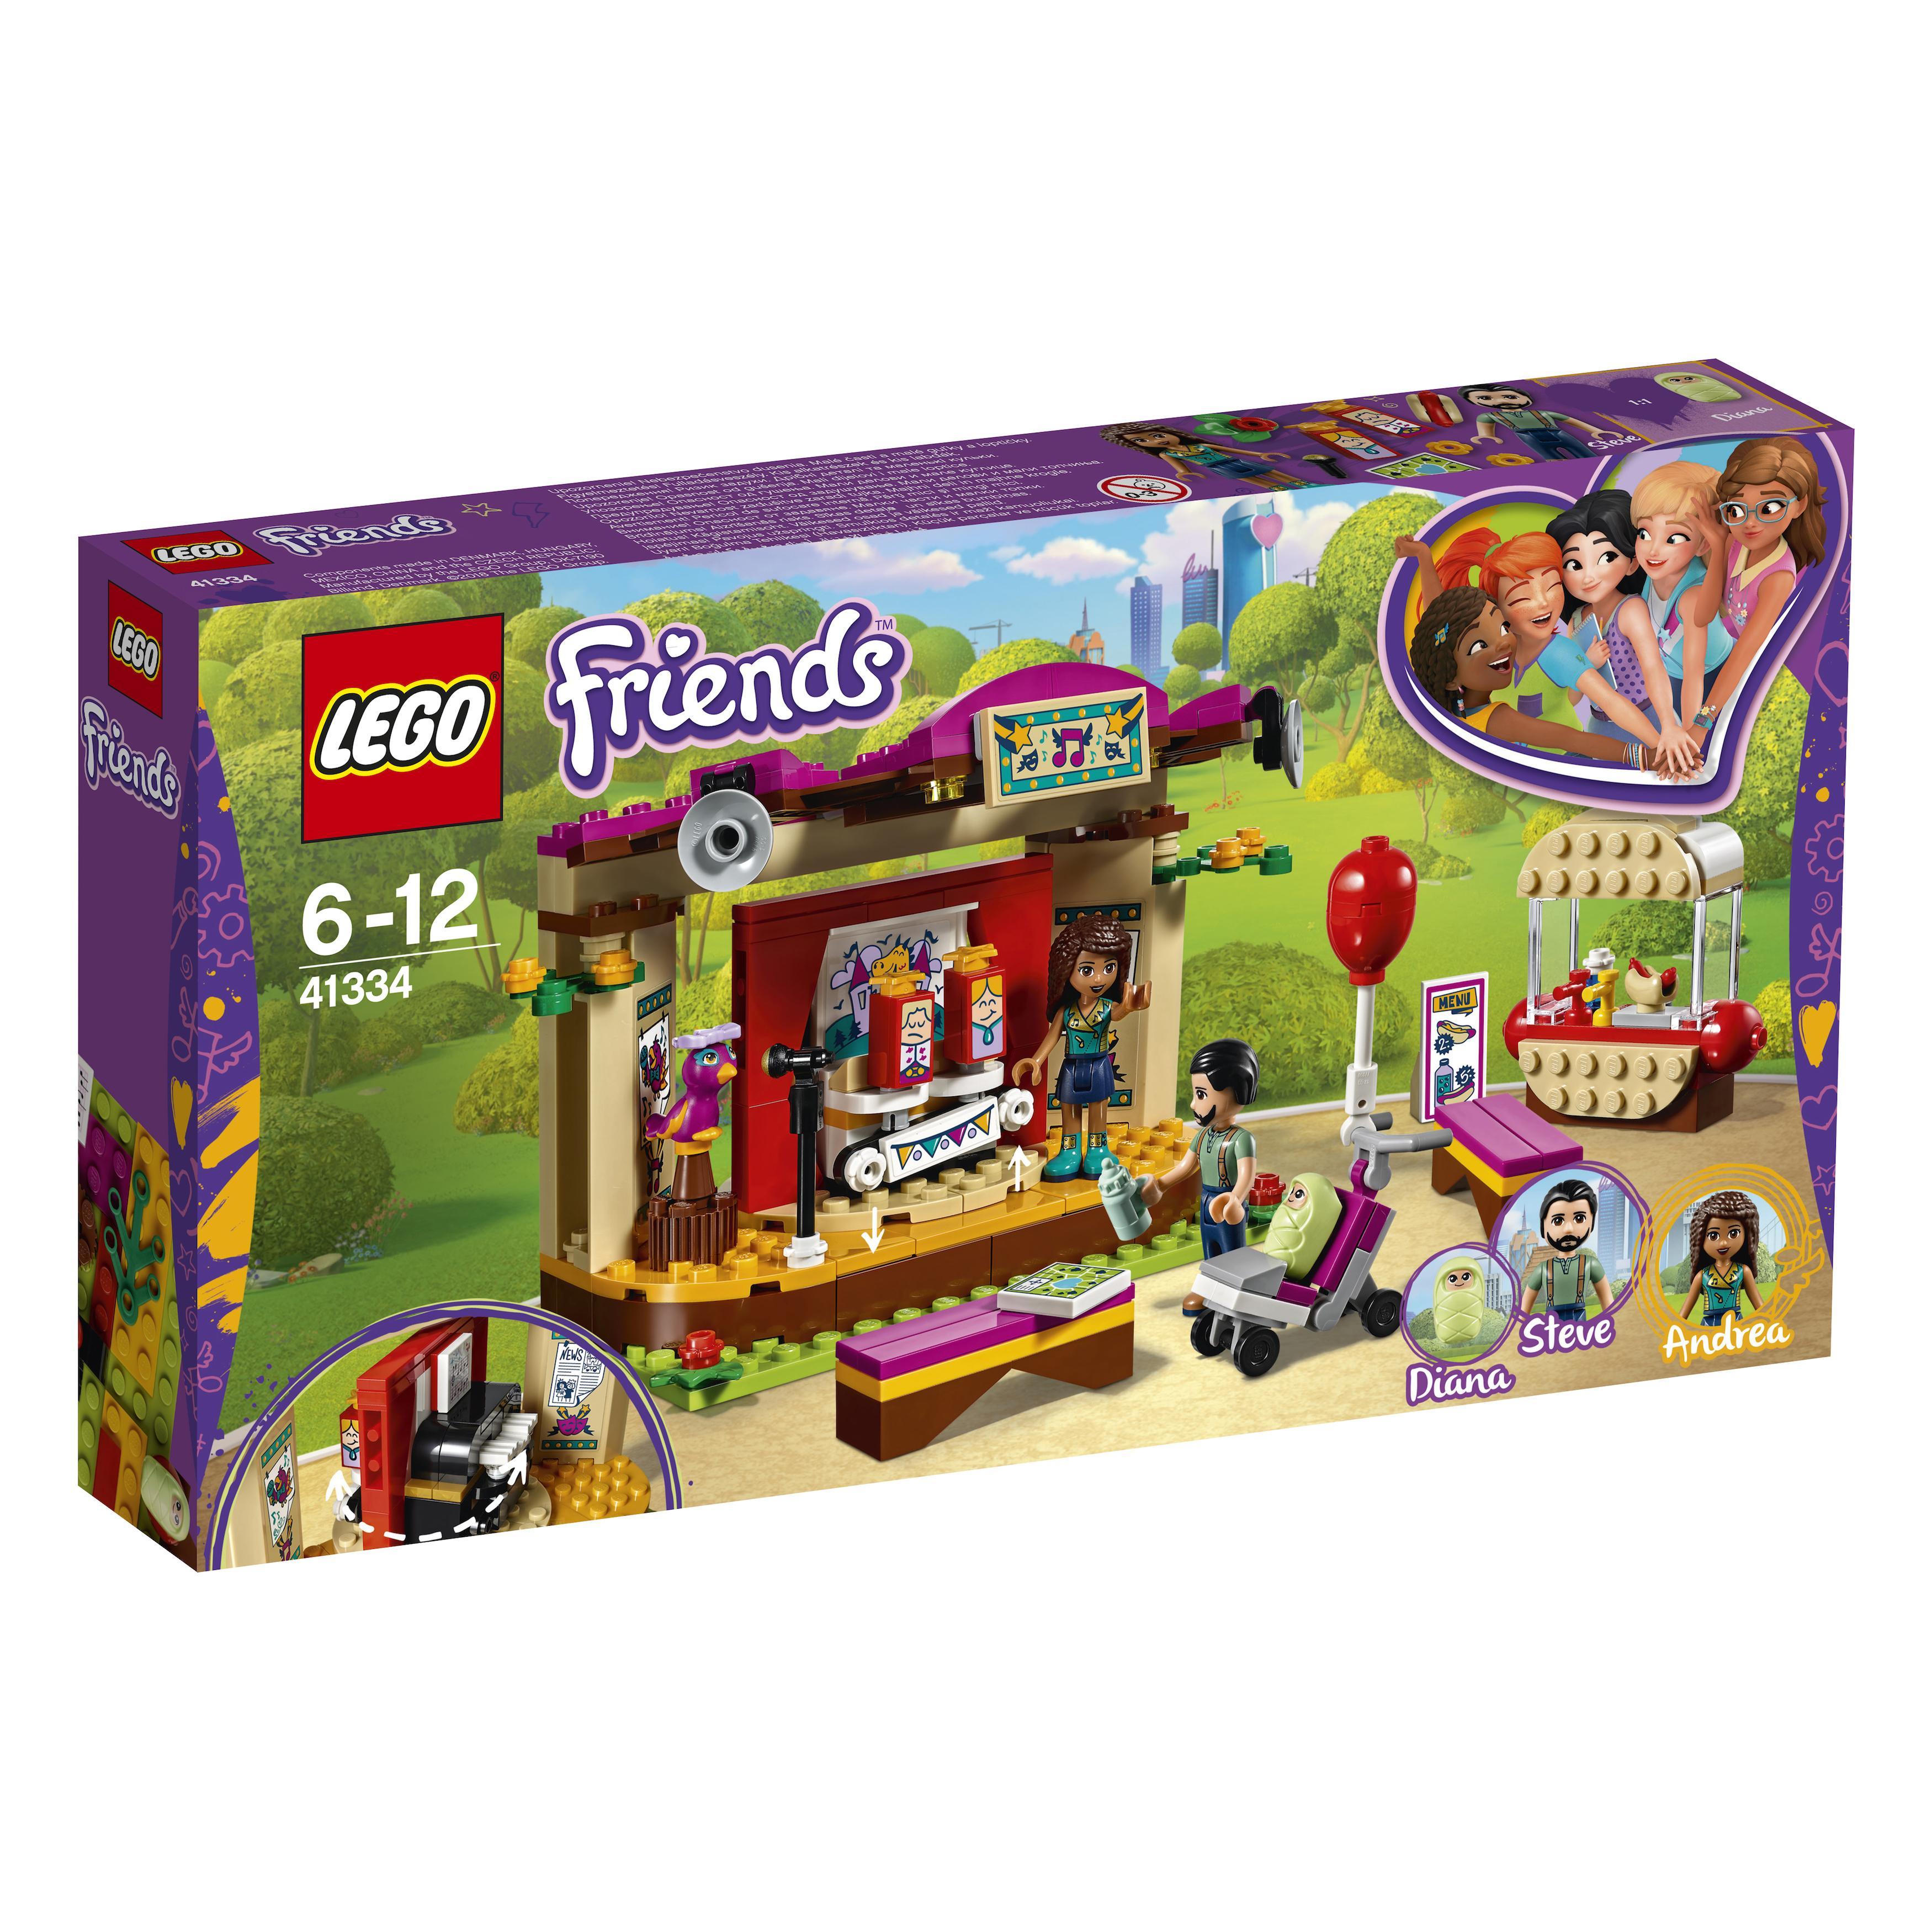 Lego Friends Andrea's Park Performance (41334)